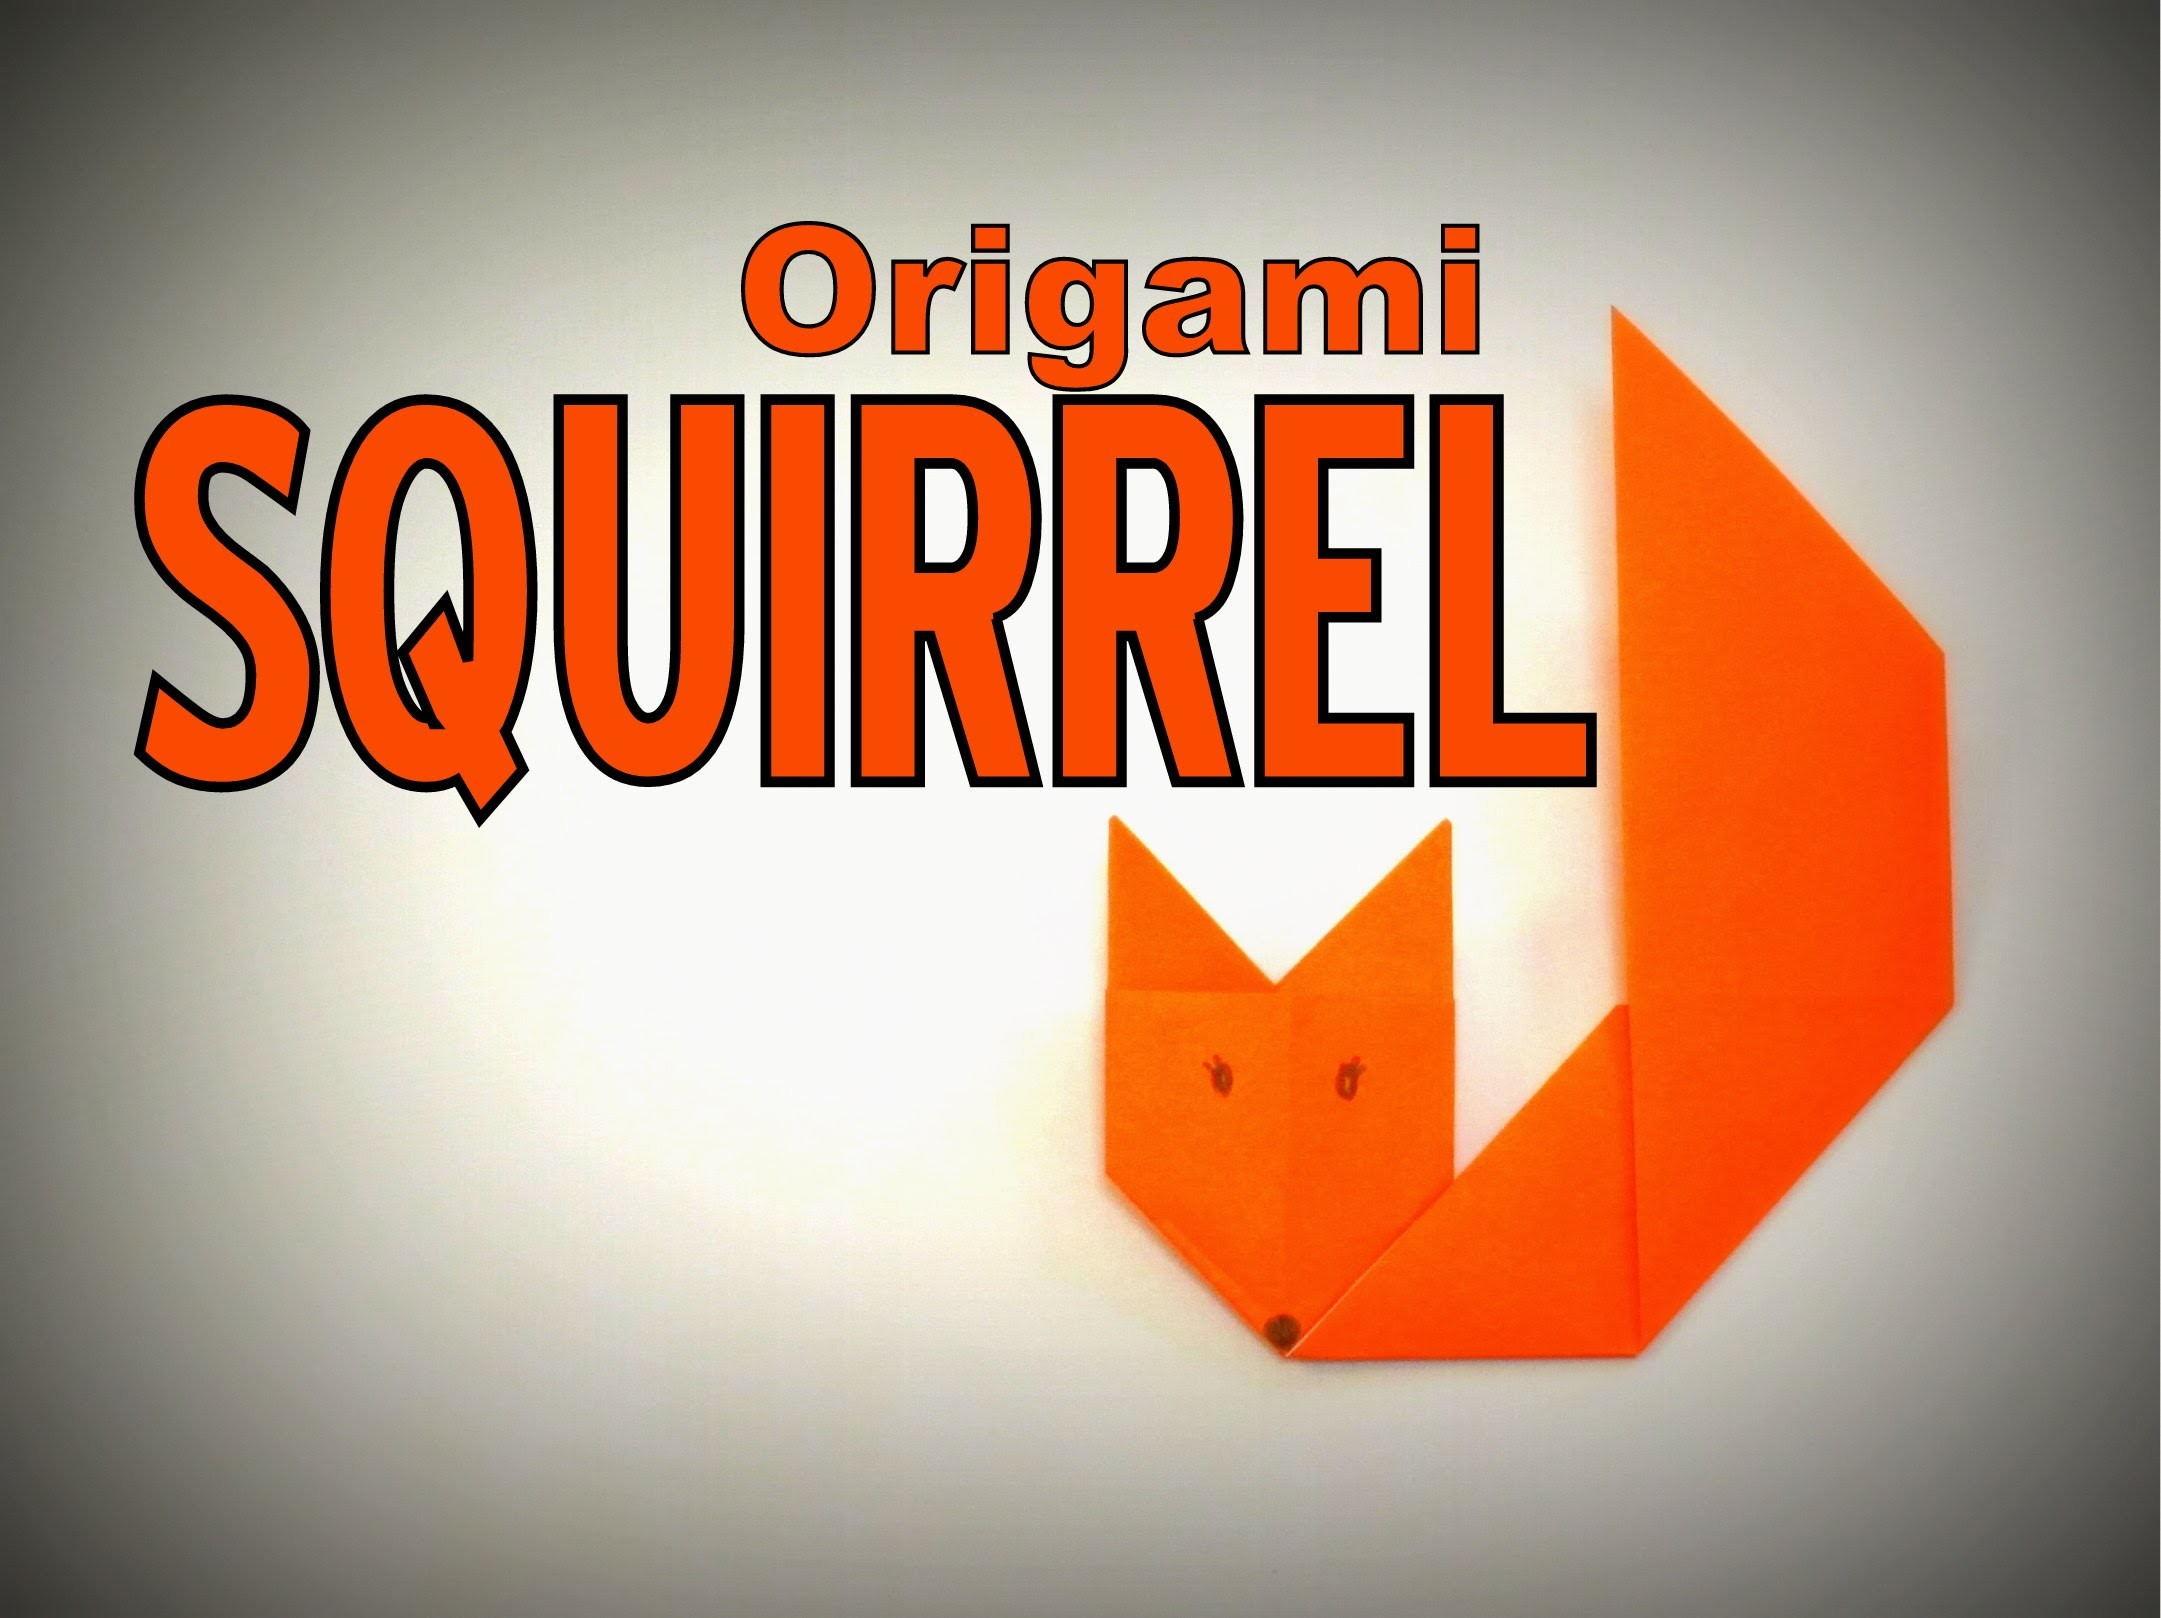 Origami - How to make a SQUIRREL